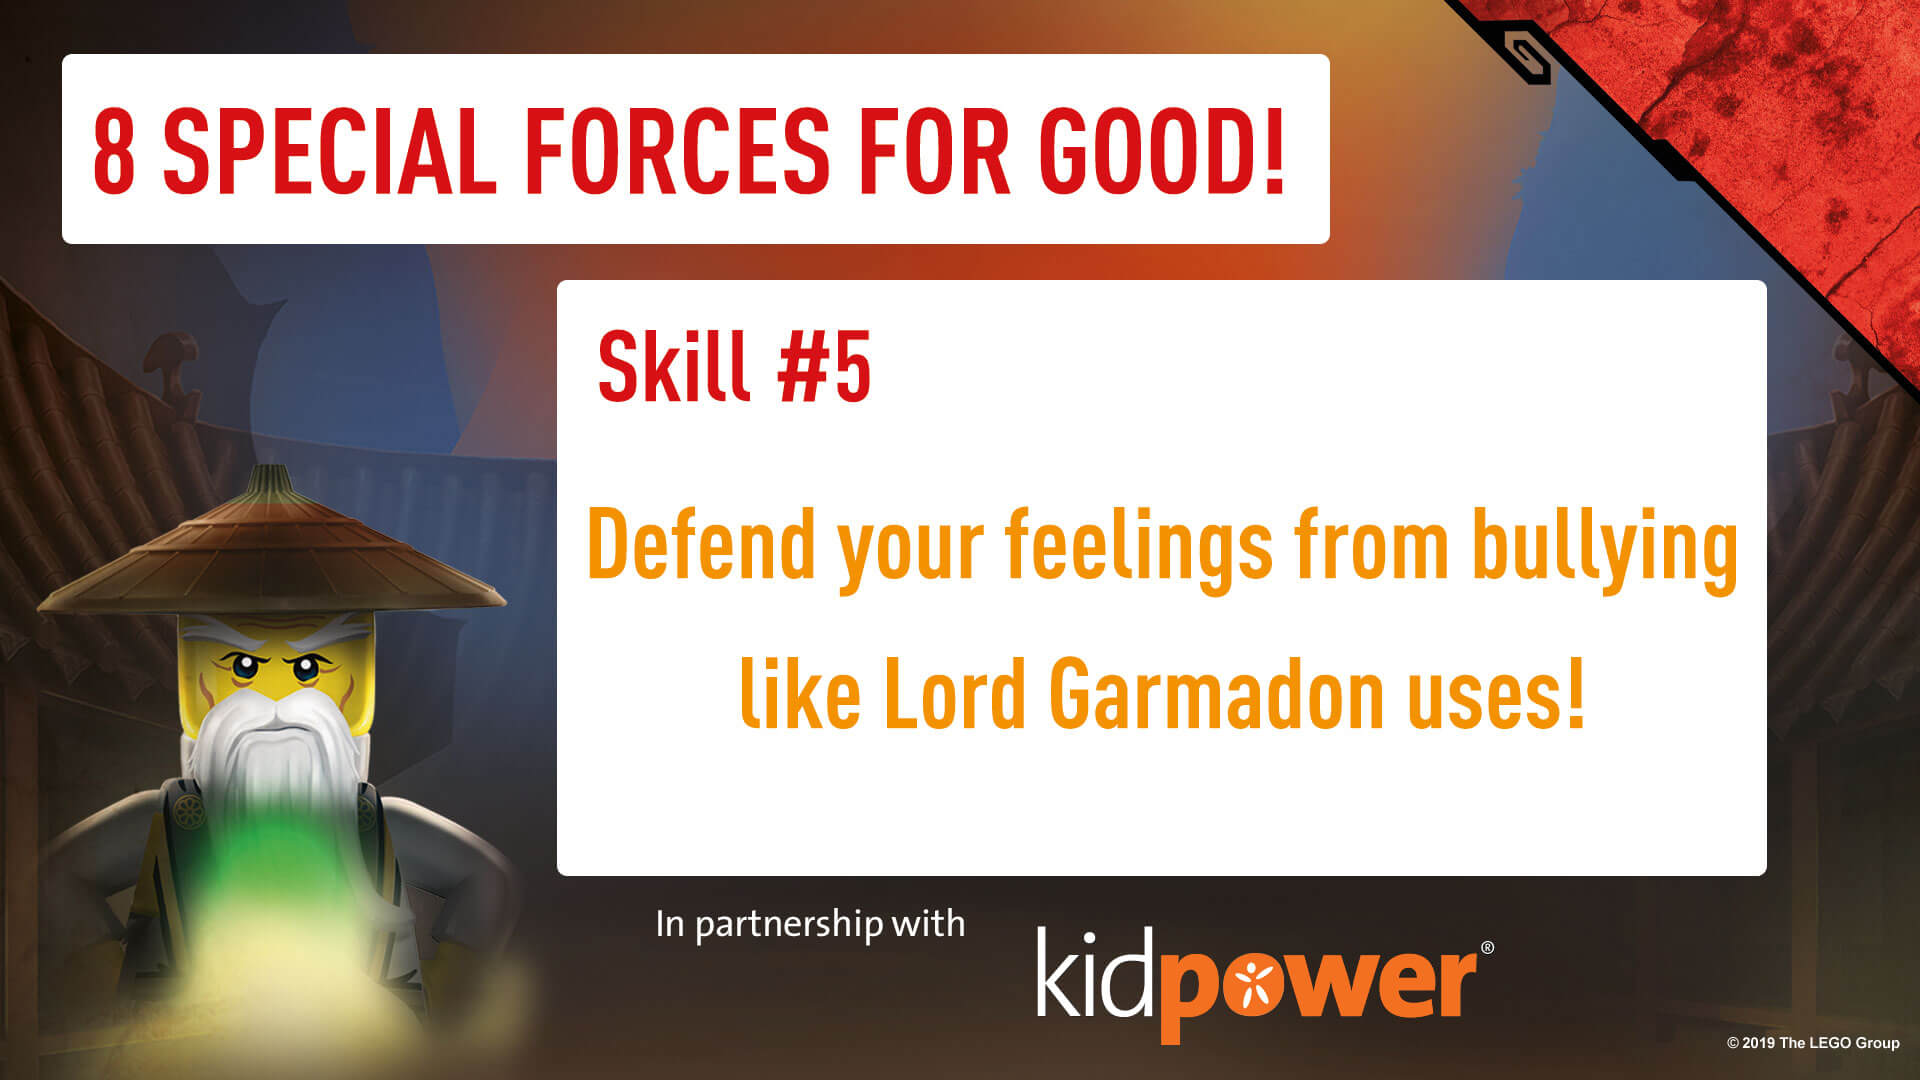 Special Forces For Good - Skill #5 - NINJAGO & KIDPOWER